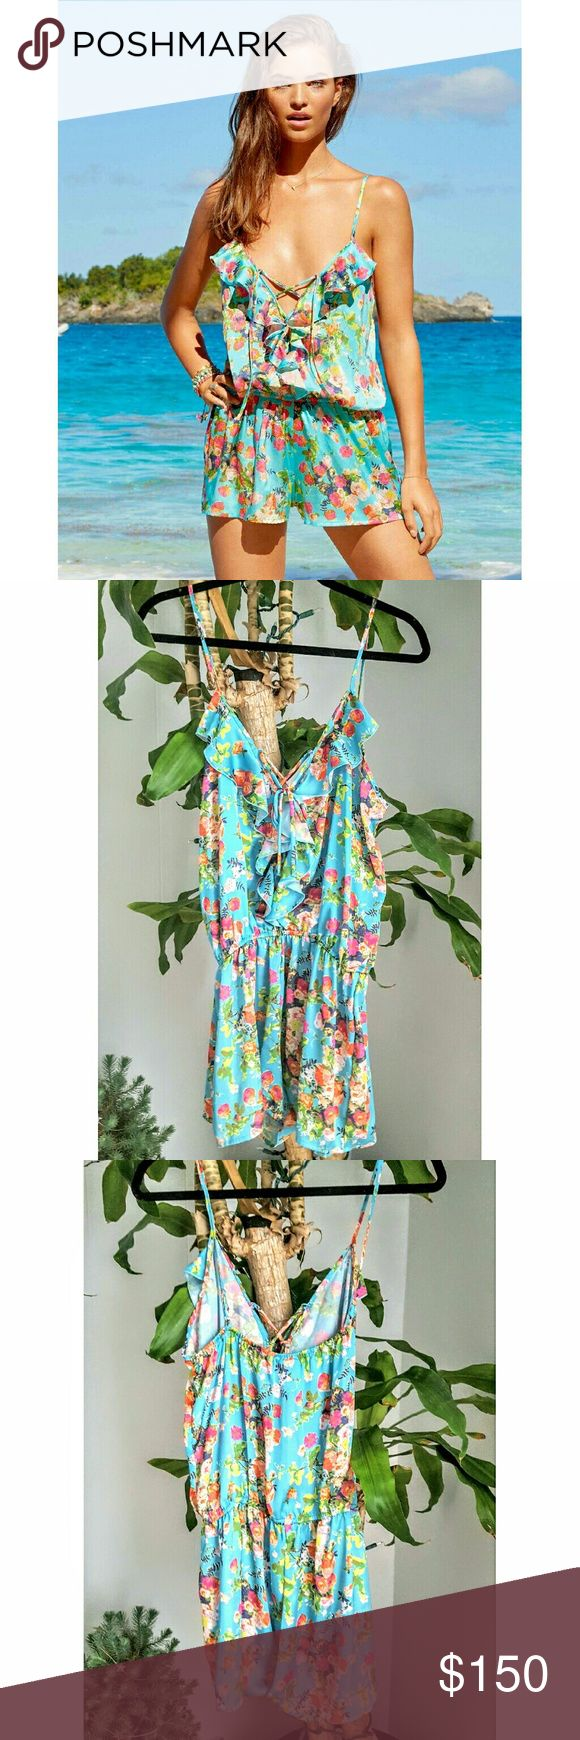 Beach Bunny Swimwear floral romper Silky romper with adjustable shoulder straps and plunging lace up front.  Perfect for brunch! Beach Bunny Shorts